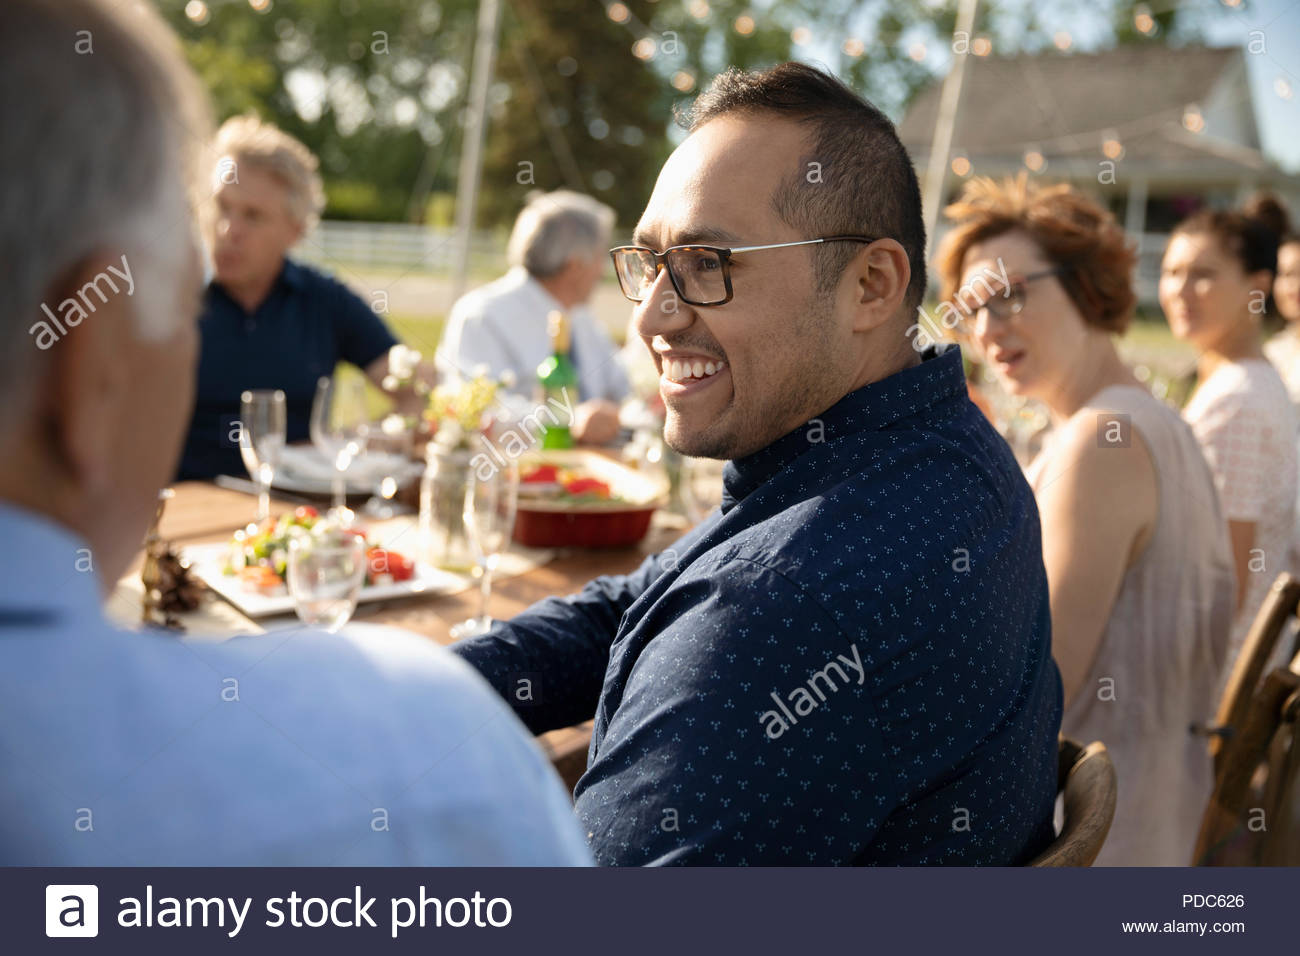 Smiling man enjoying wedding reception lunch at patio table - Stock Image